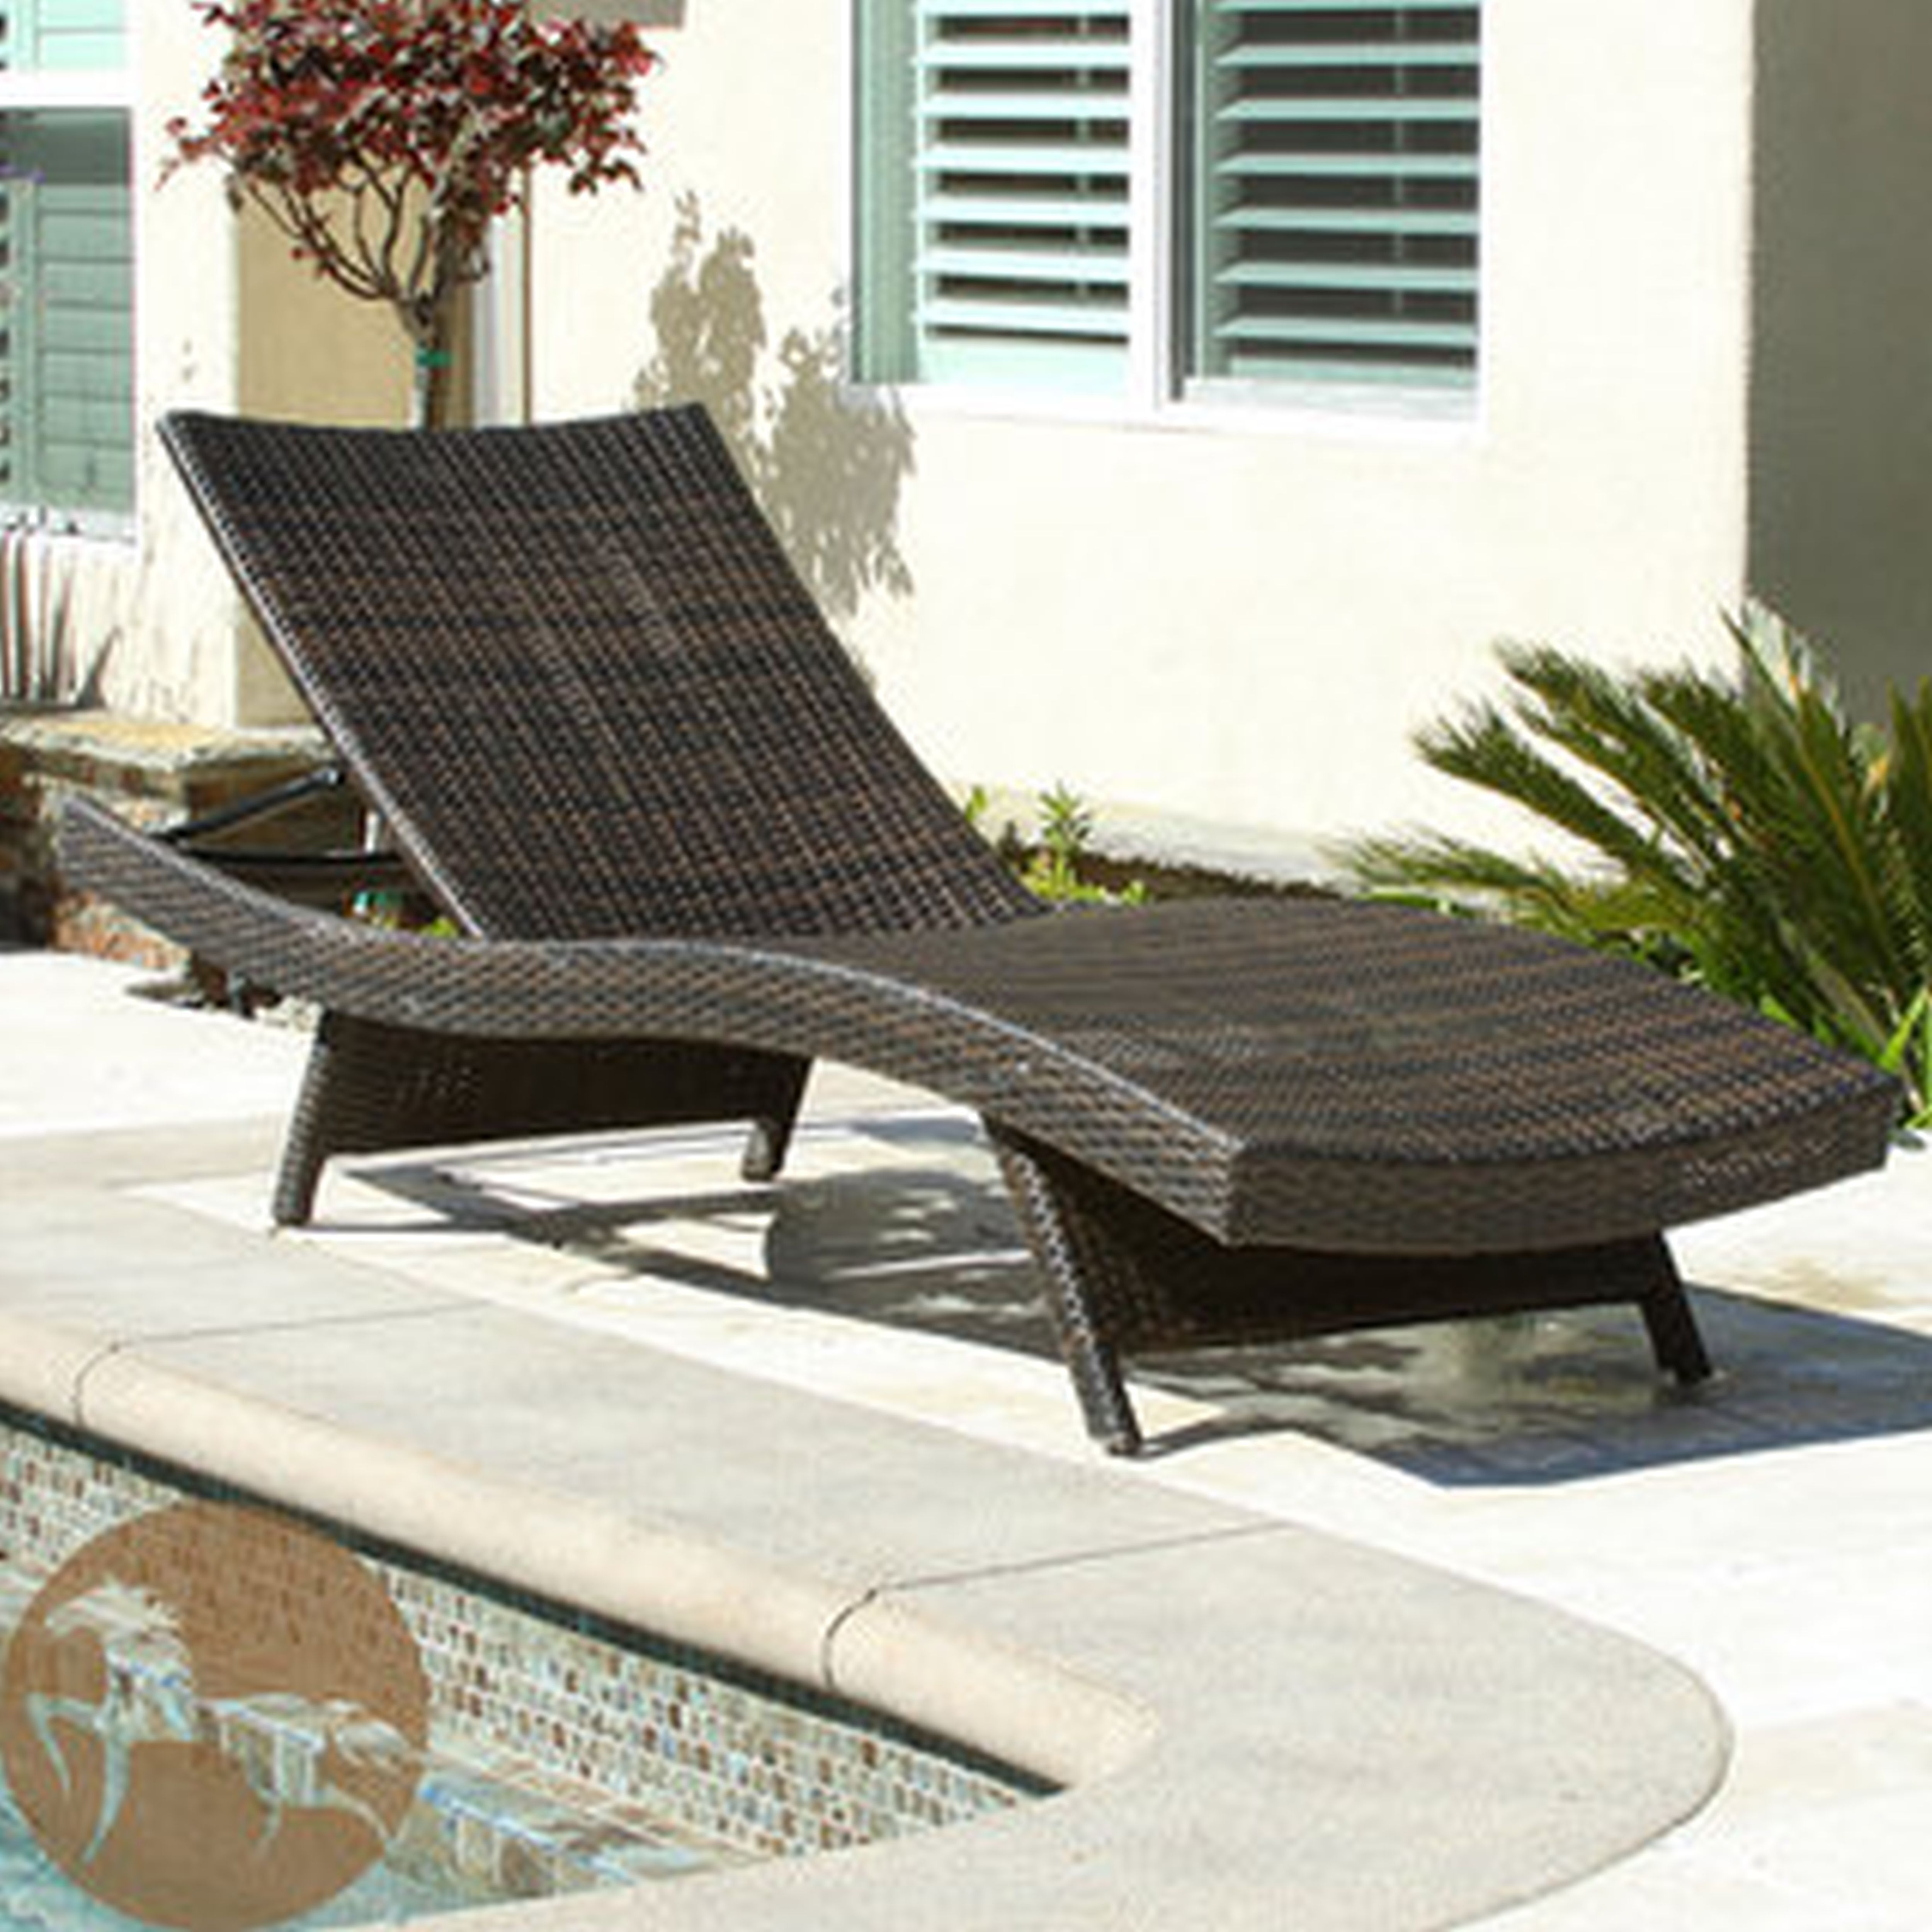 design outdoor furniture contemporary sofa of modern chairs sofas patio size pool full